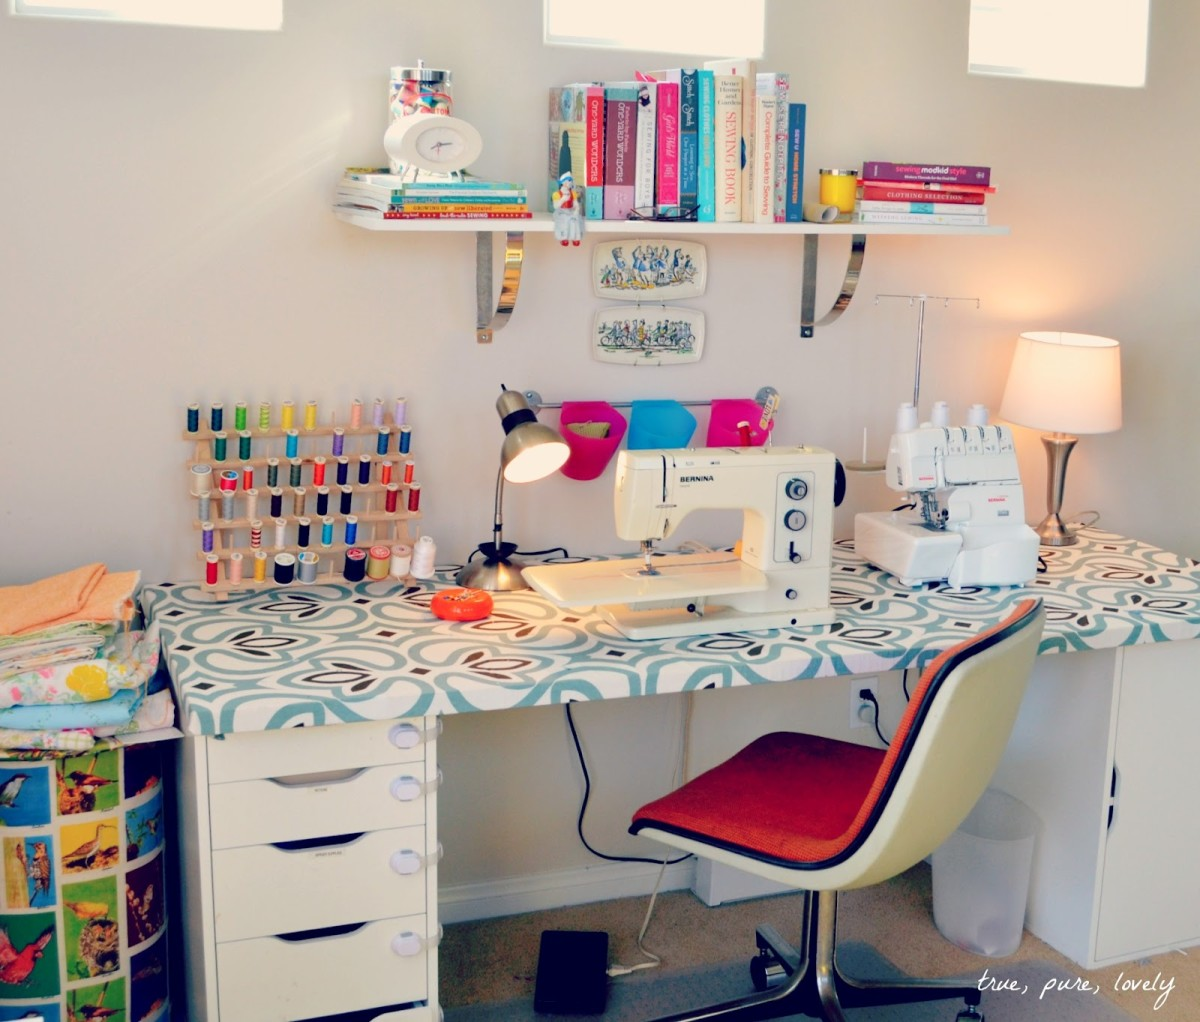 Consider investing in a sewing machine so that you can create your own clothes or home decorations!